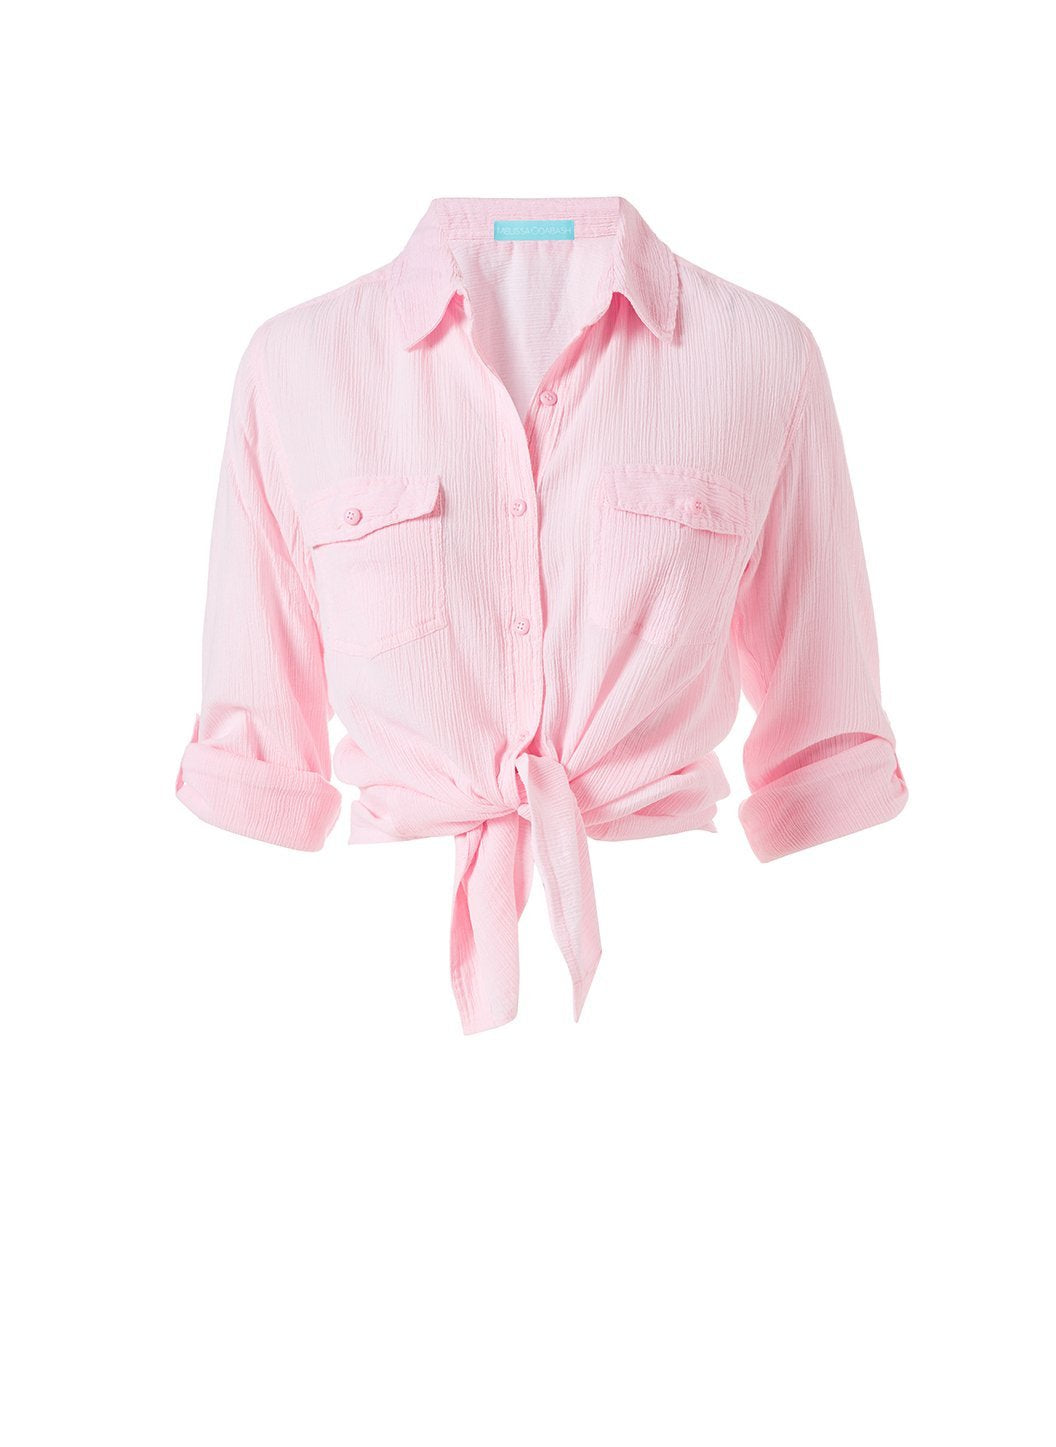 Tash Blush Shirt Video